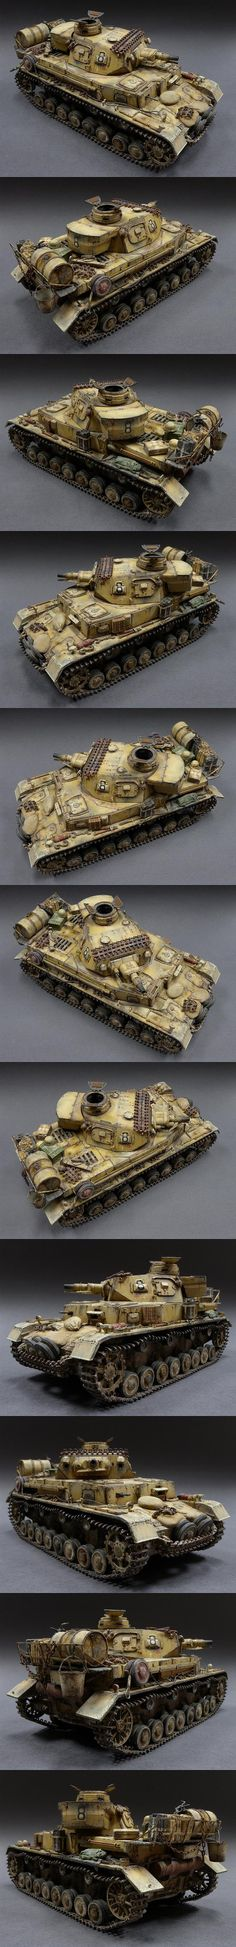 Cool dioramas. Amazing paint jobs!!!! - Page 3 - AR15.COM